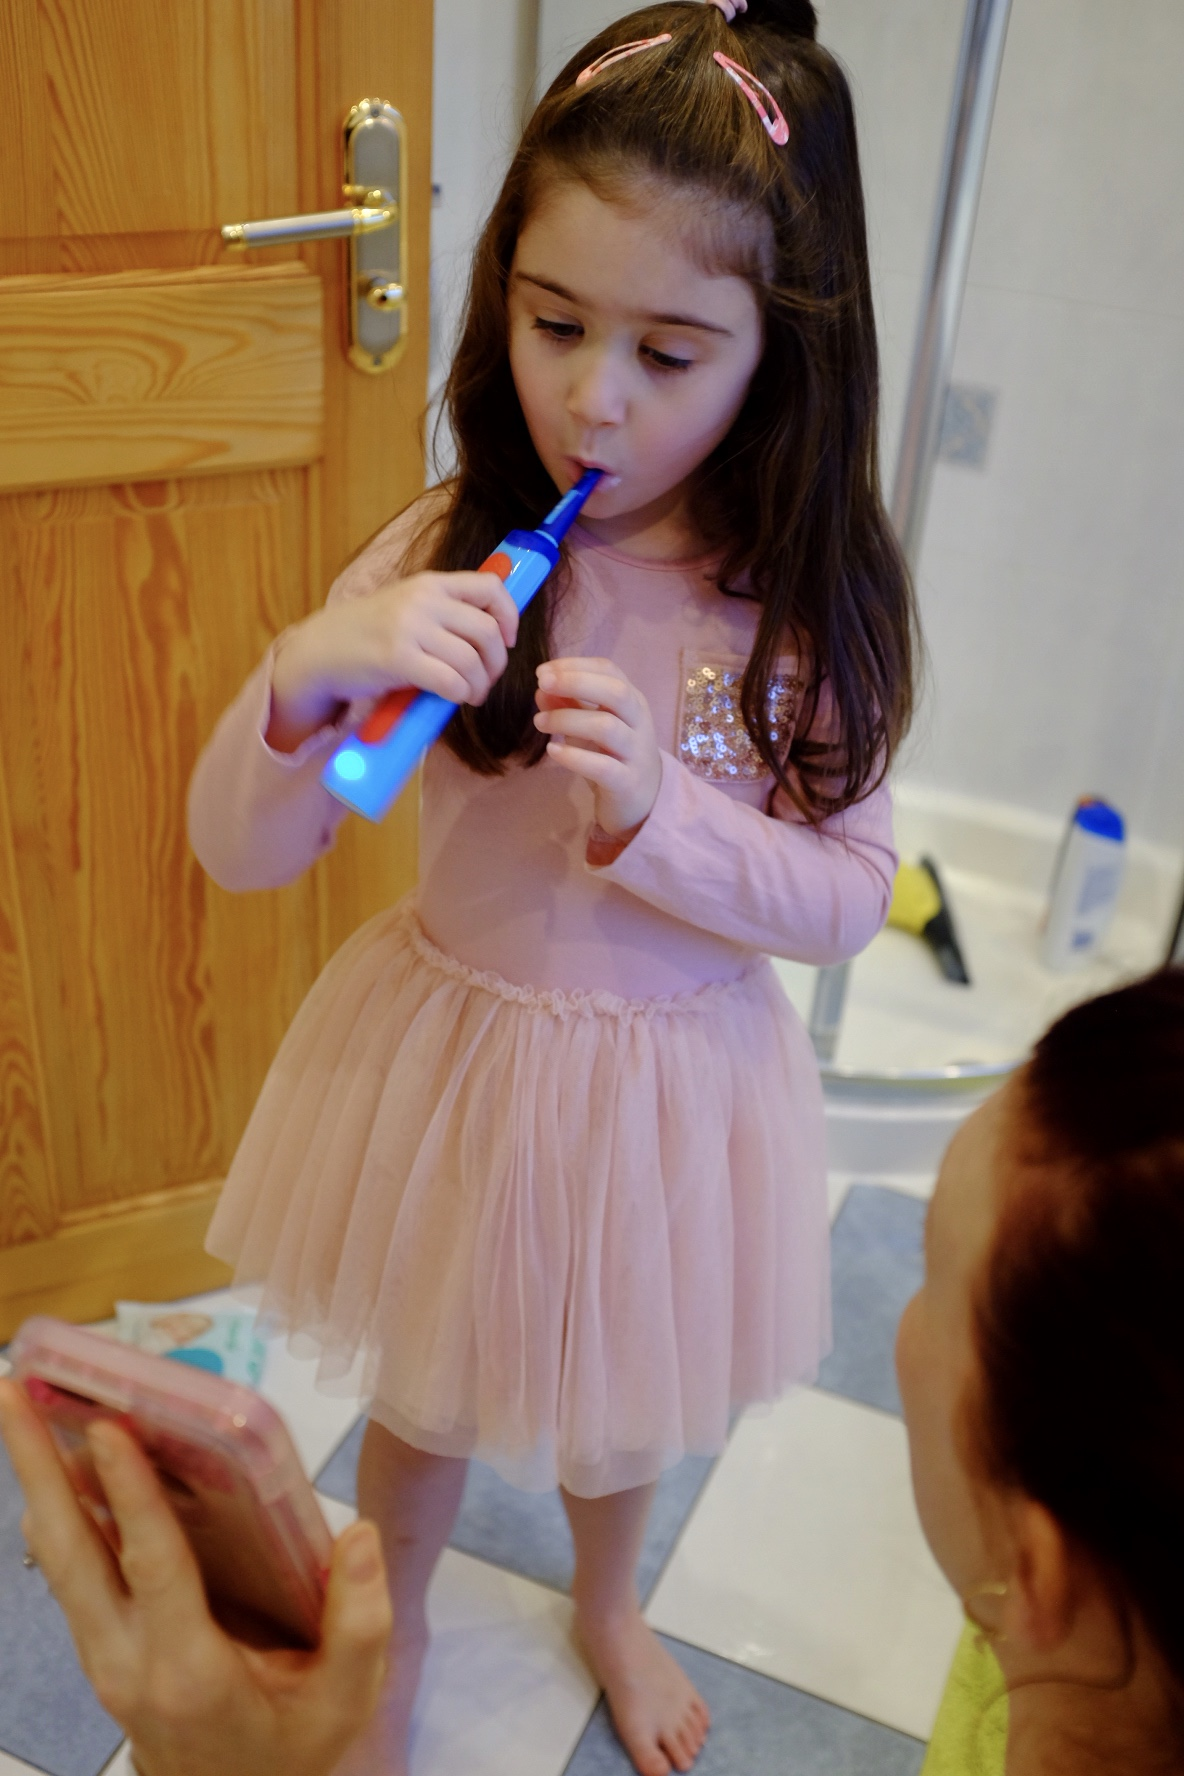 girl brushing her teeth with Playbrush